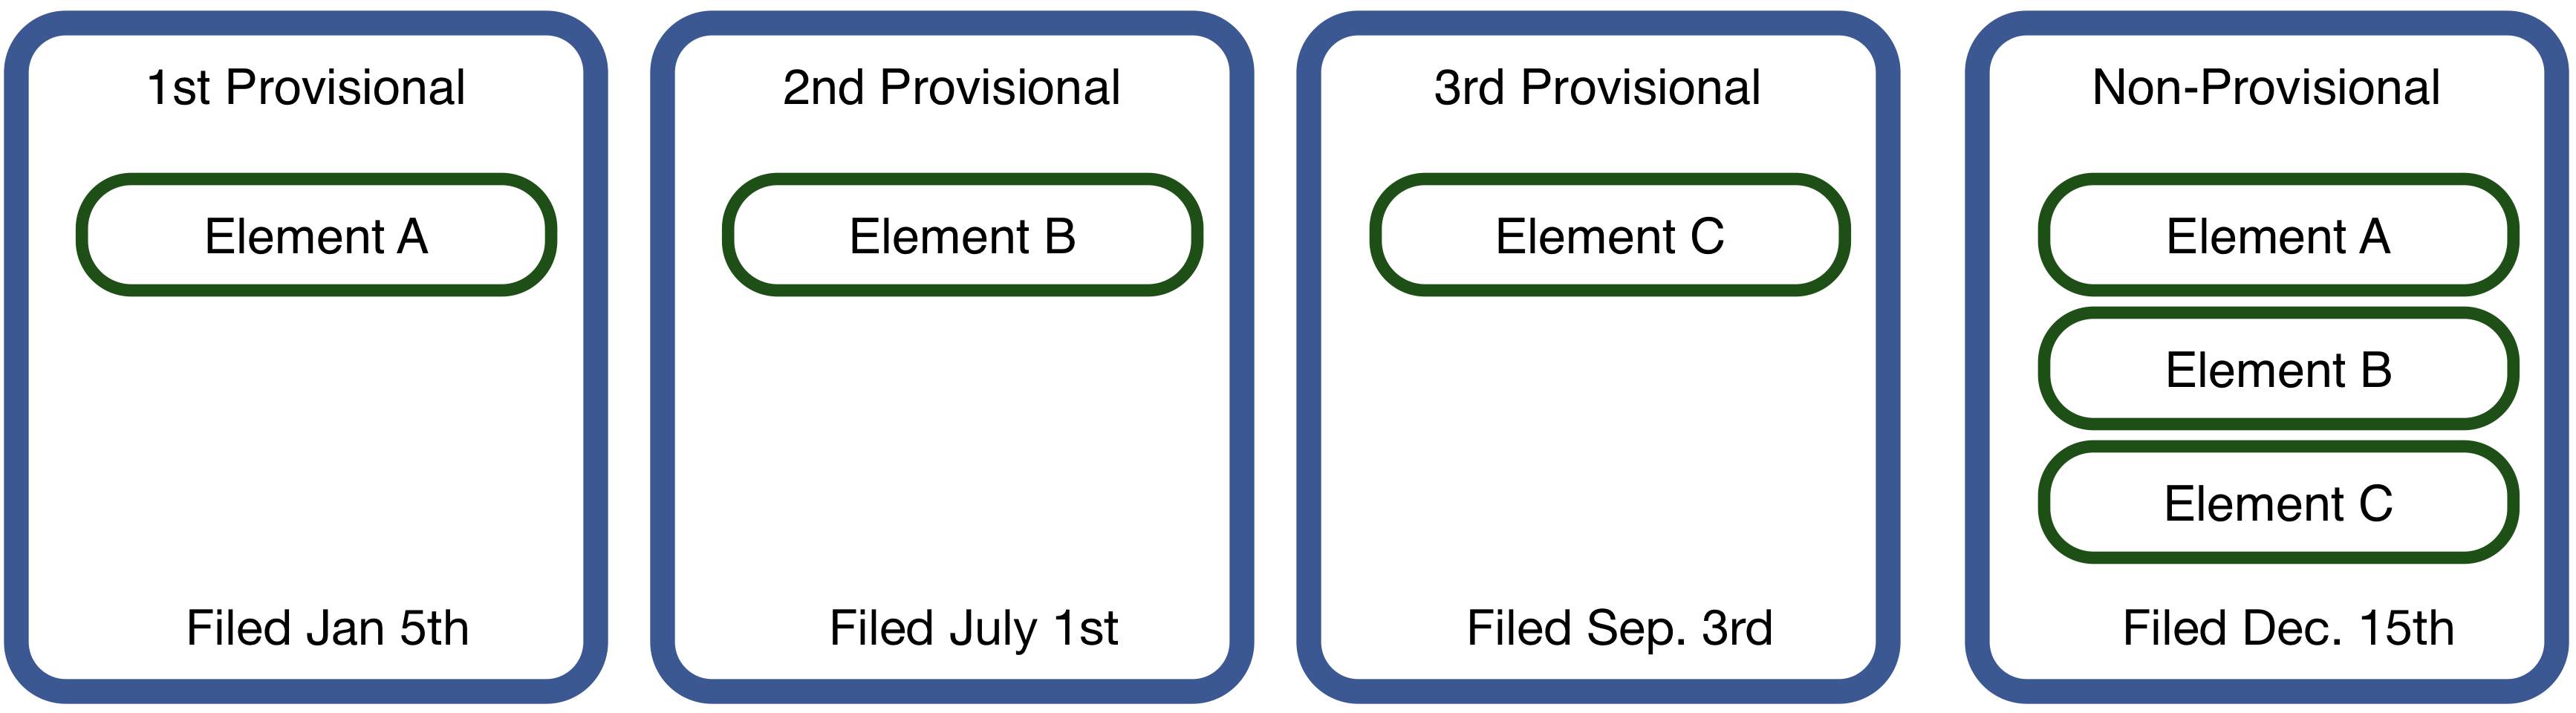 Multiple provisional 				patent applications can be filed over time and combined into a single non-provisional patent application